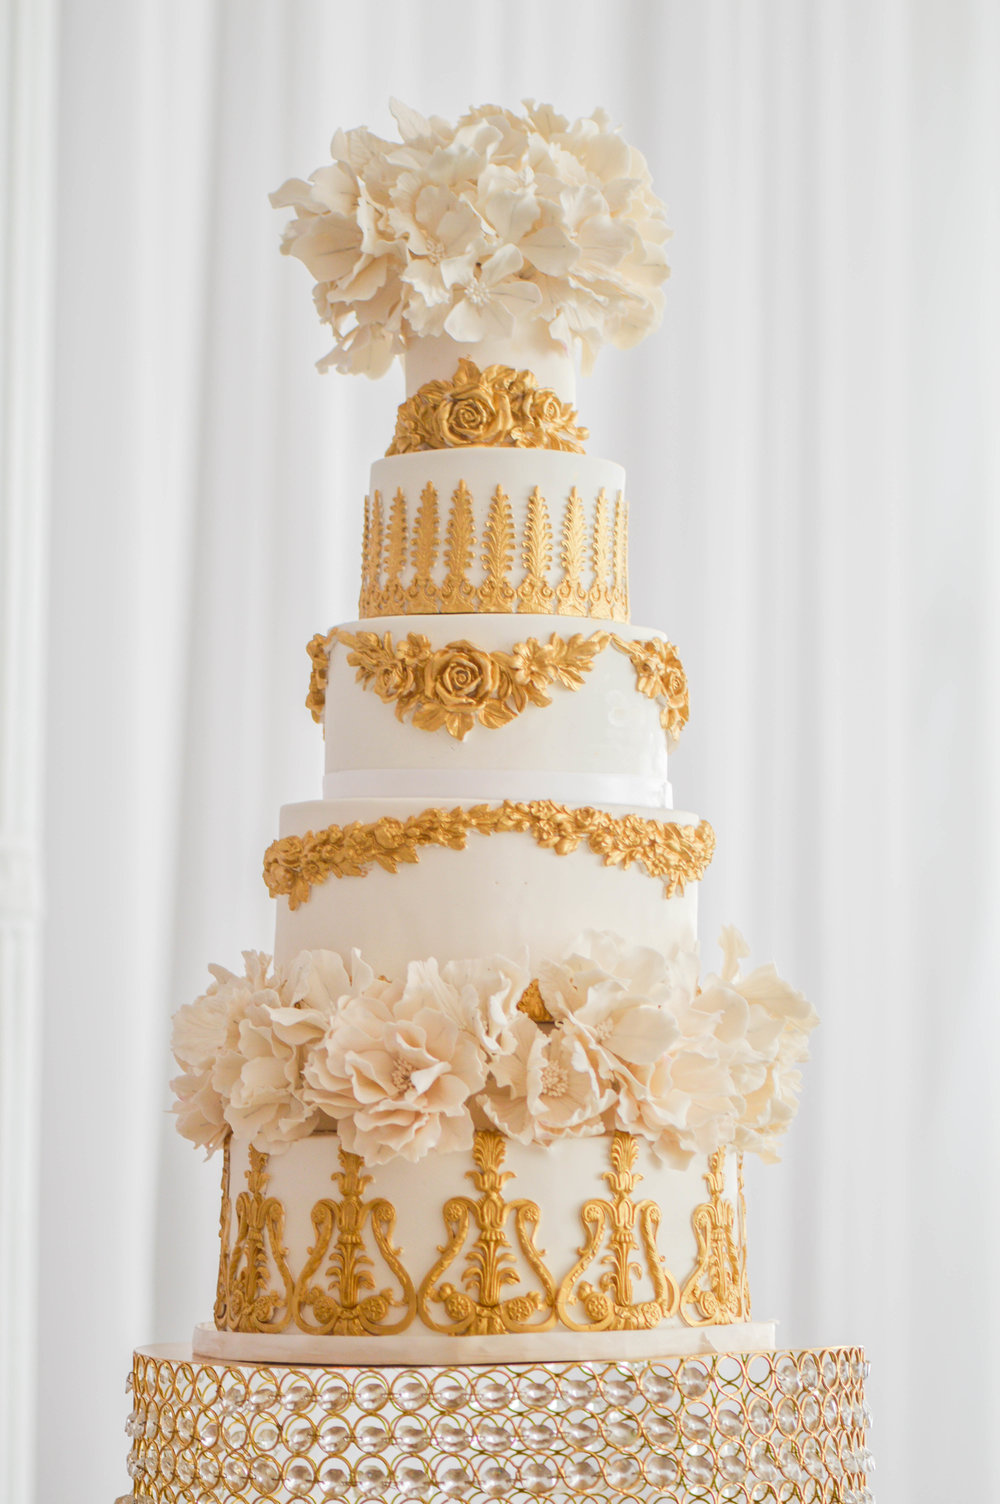 """Beautiful, Elegant, Delicious - """"Rebekah created a piece of perfection for our special day! Our guests raved about the gorgeous cake, which was over 10-tiers and covered in beautiful hand-crafted sugar flowers. She is an artisan of cake!!""""Sabine Asante"""